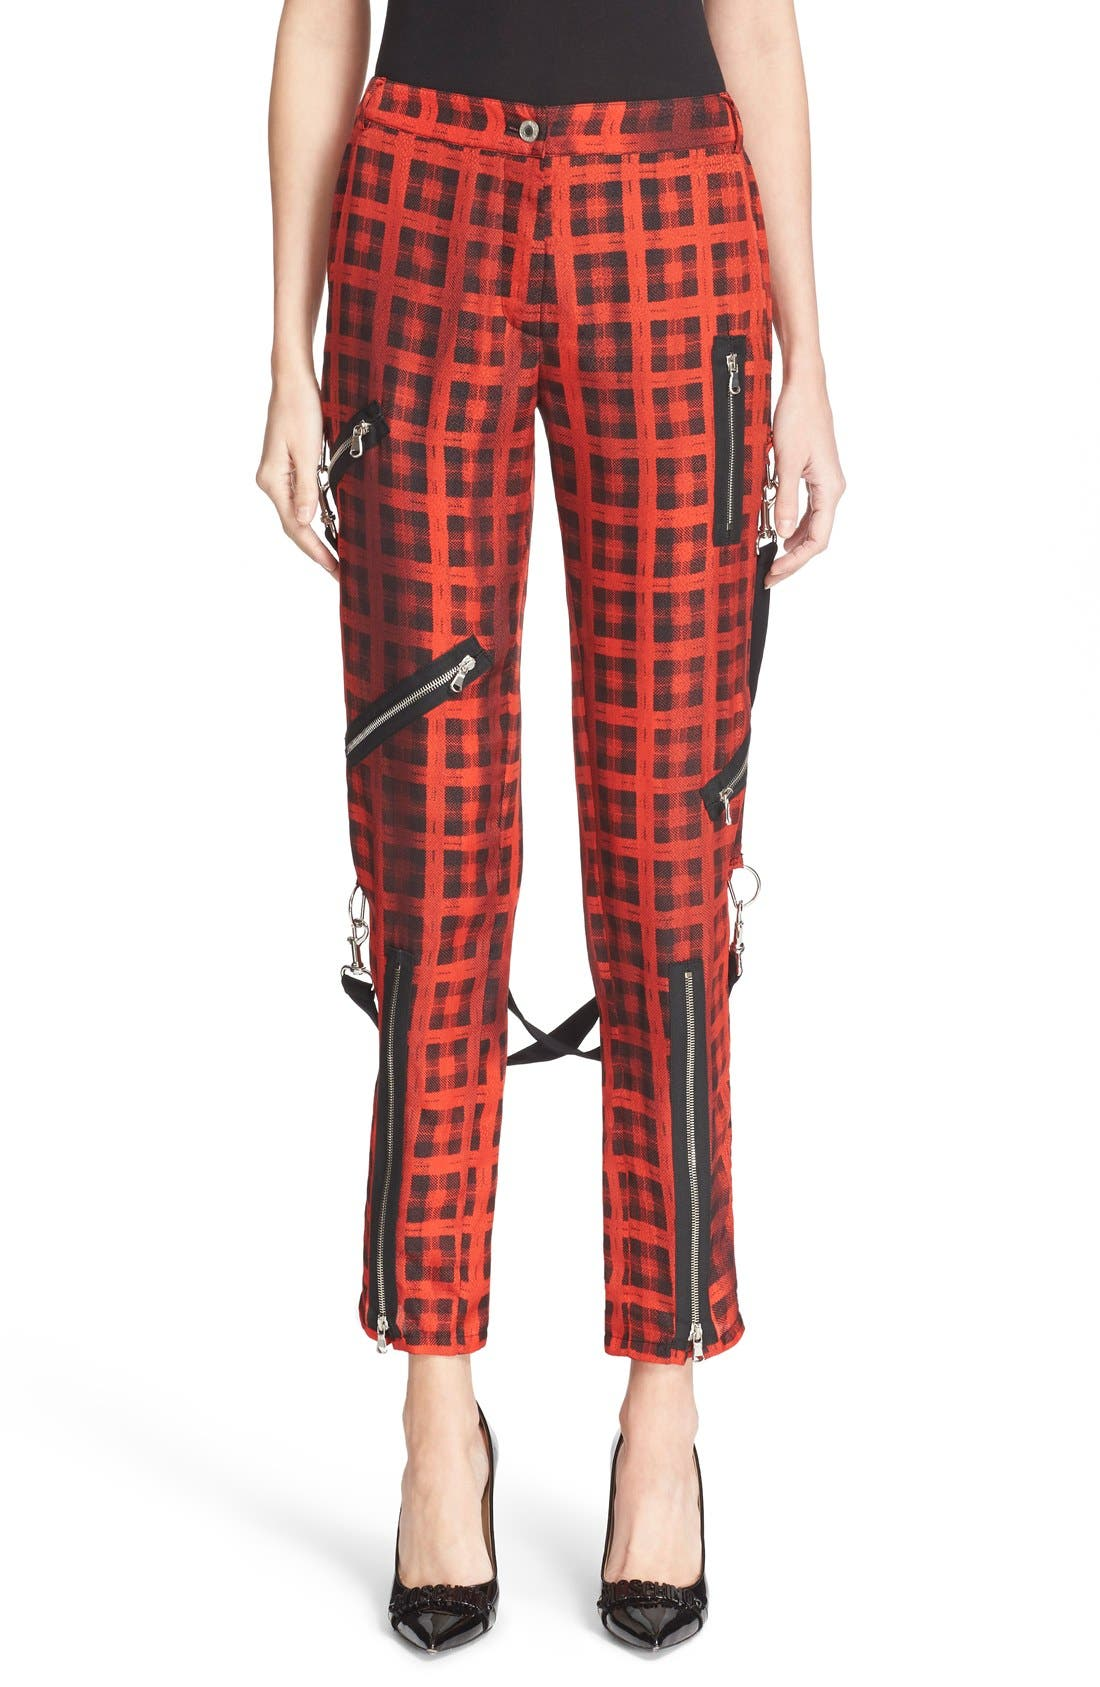 Main Image - Moschino Plaid Print Ankle Pants with Detachable Suspenders